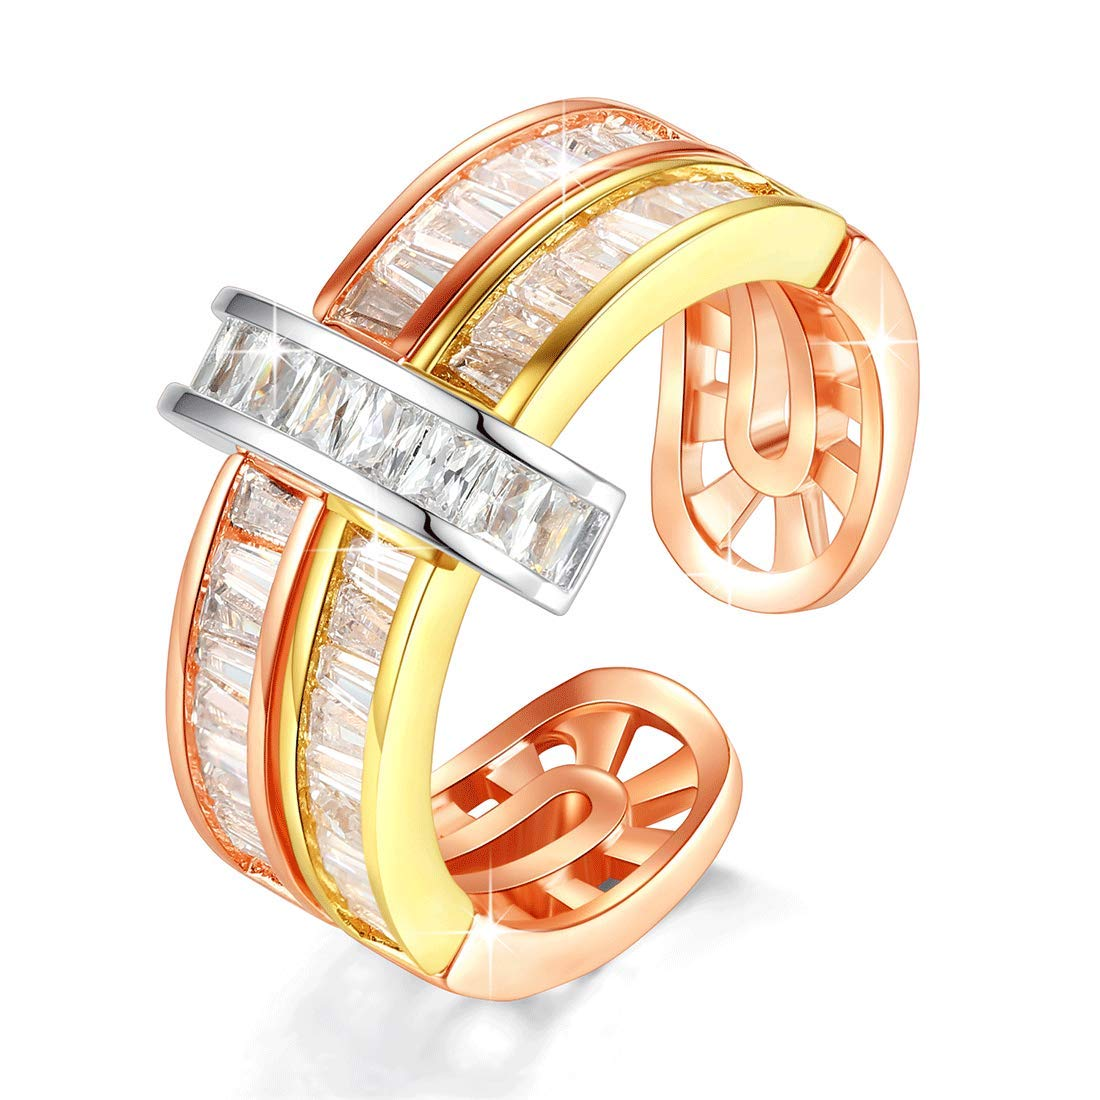 VICISION 2019 2 Color Statement Band Ring Gold Plated 5A Cubic Zirconia for Women Fine Fashion Jewelry Accessories